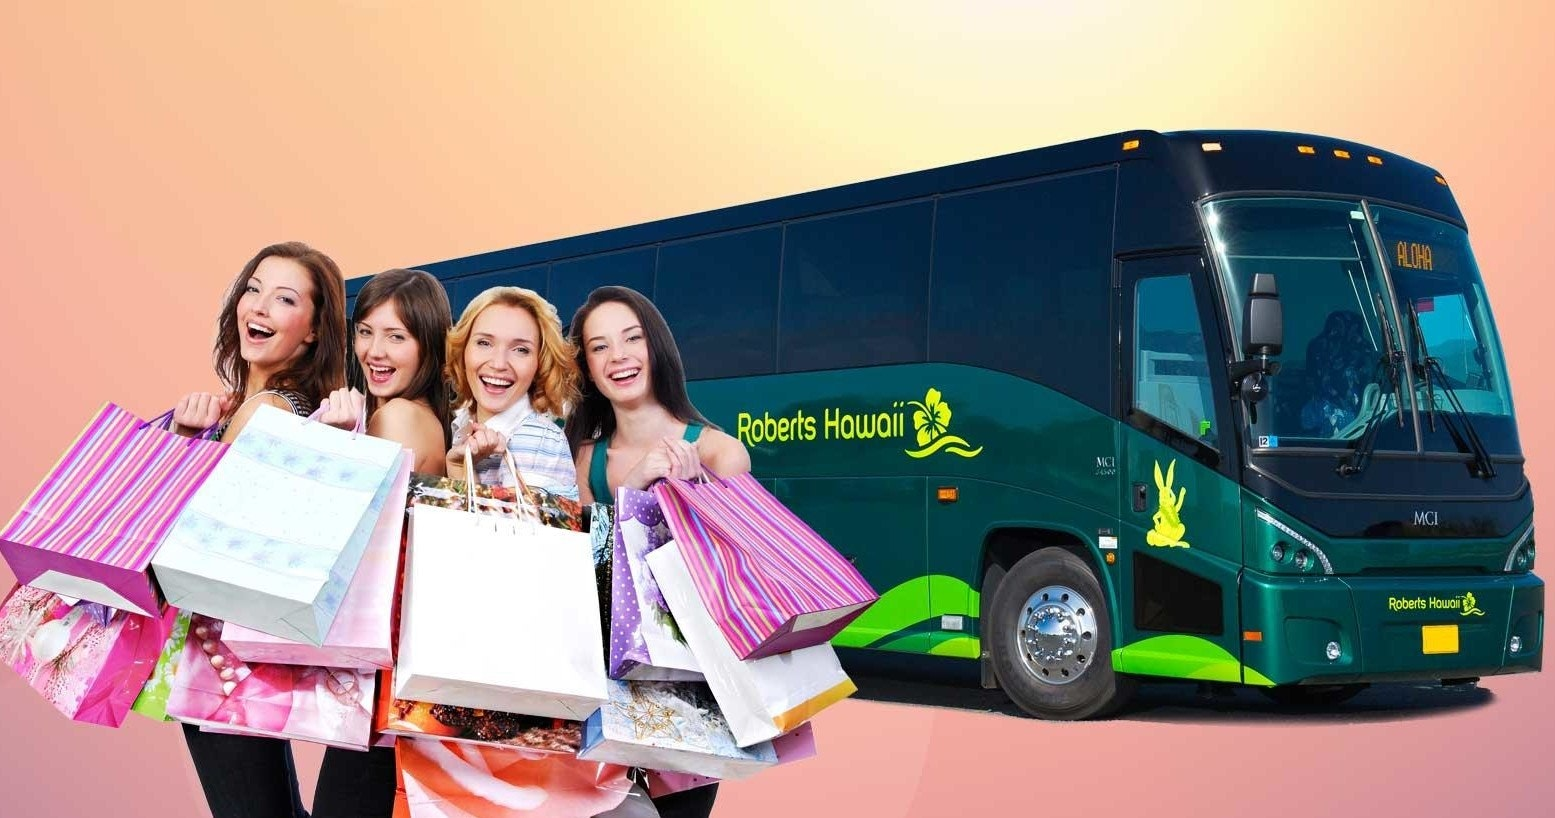 The Waikele Outlet Shopping Shuttle is the hassle free way to go shopping  for bargains in over 50 legendary brand name stores. Let Roberts Hawaii  worry ...